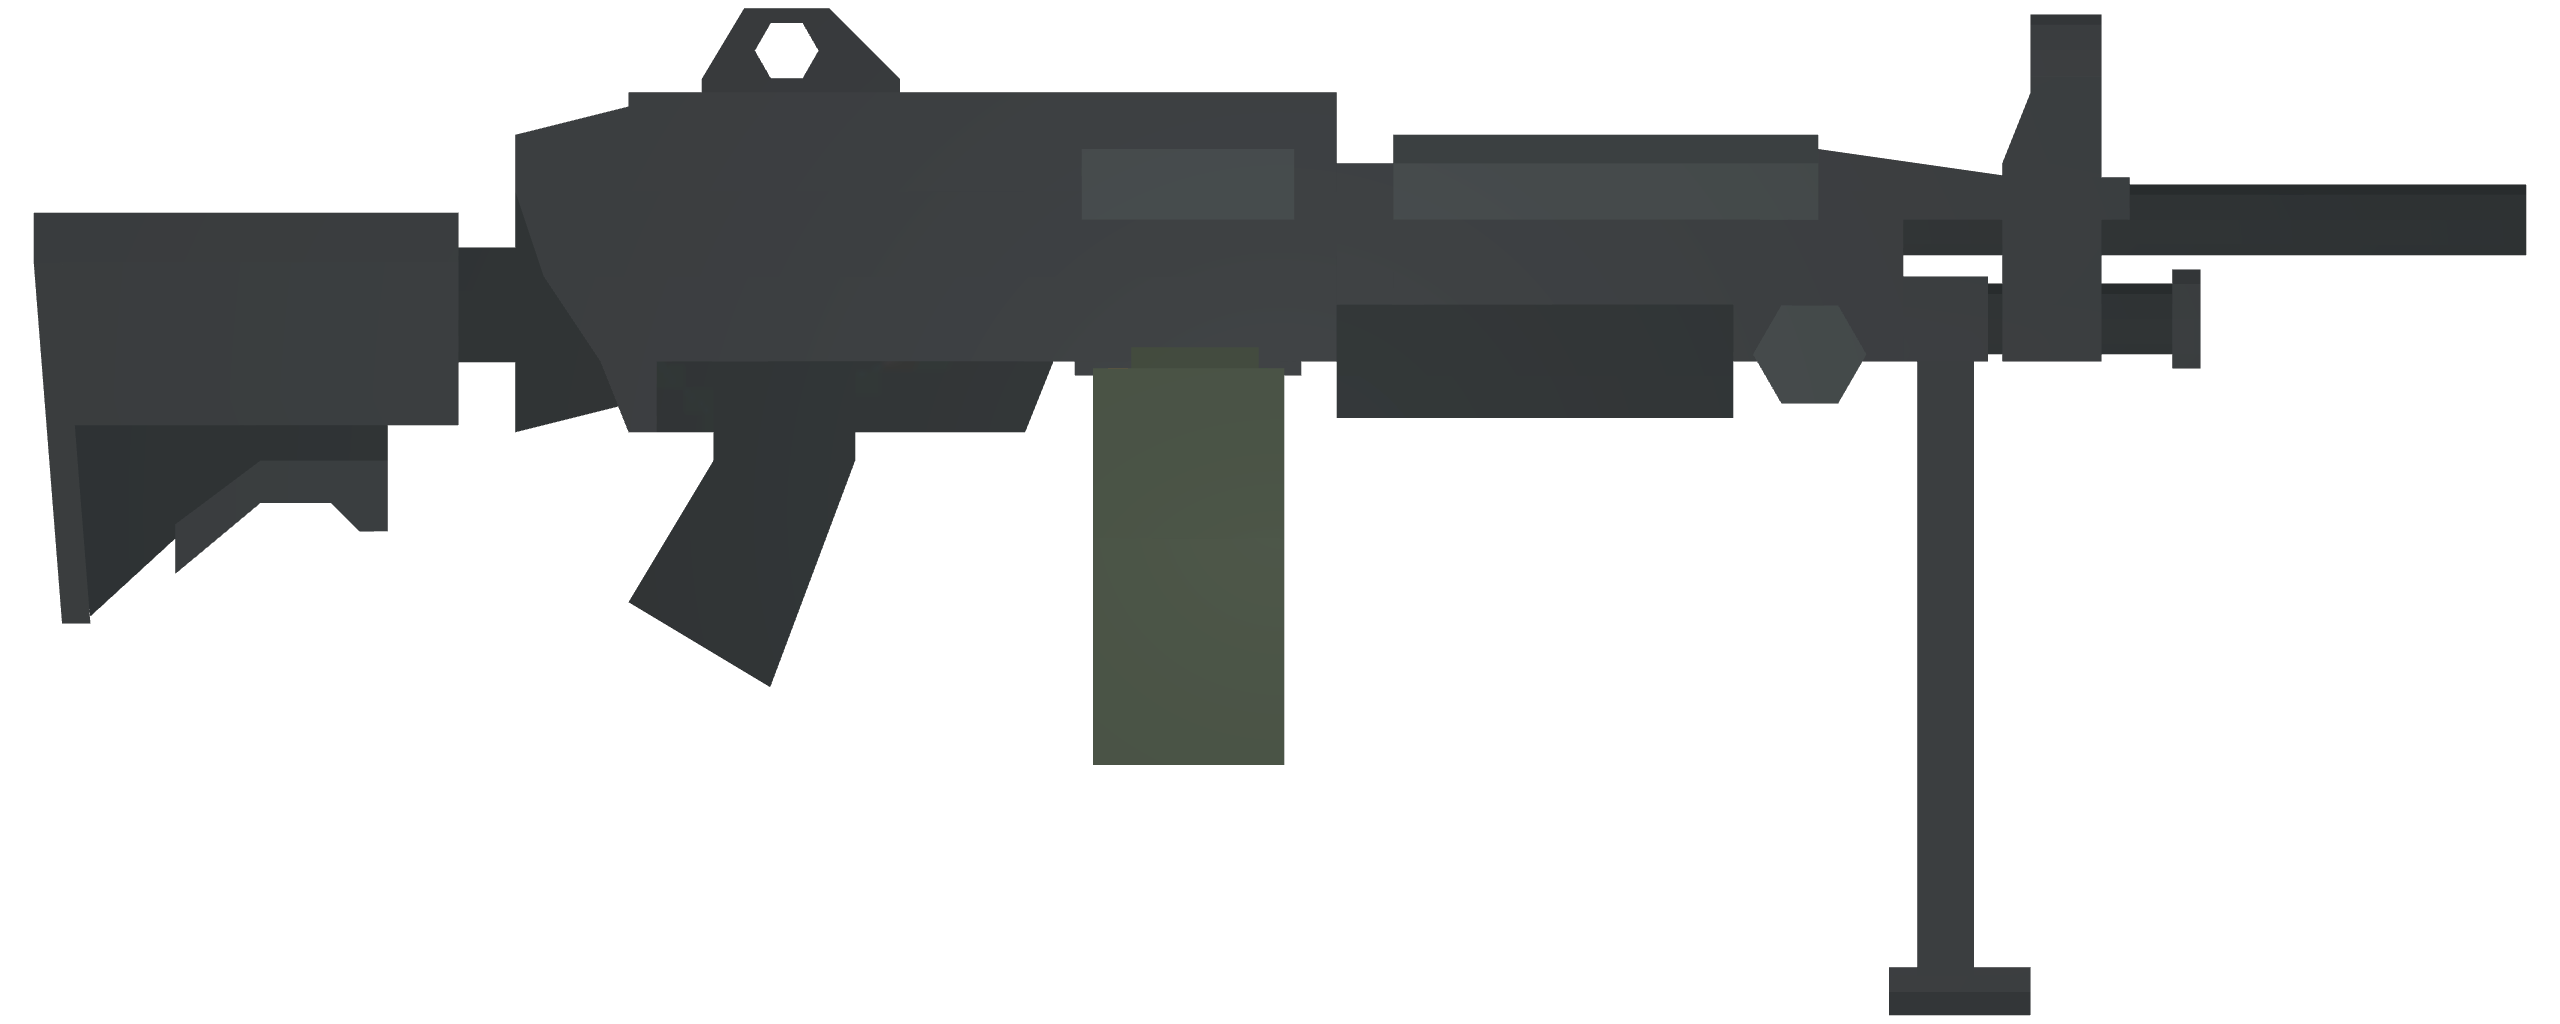 Unturned Uncreated Warfare Mods & All ID List + Attachments - USA Weapons - 1AEF10B